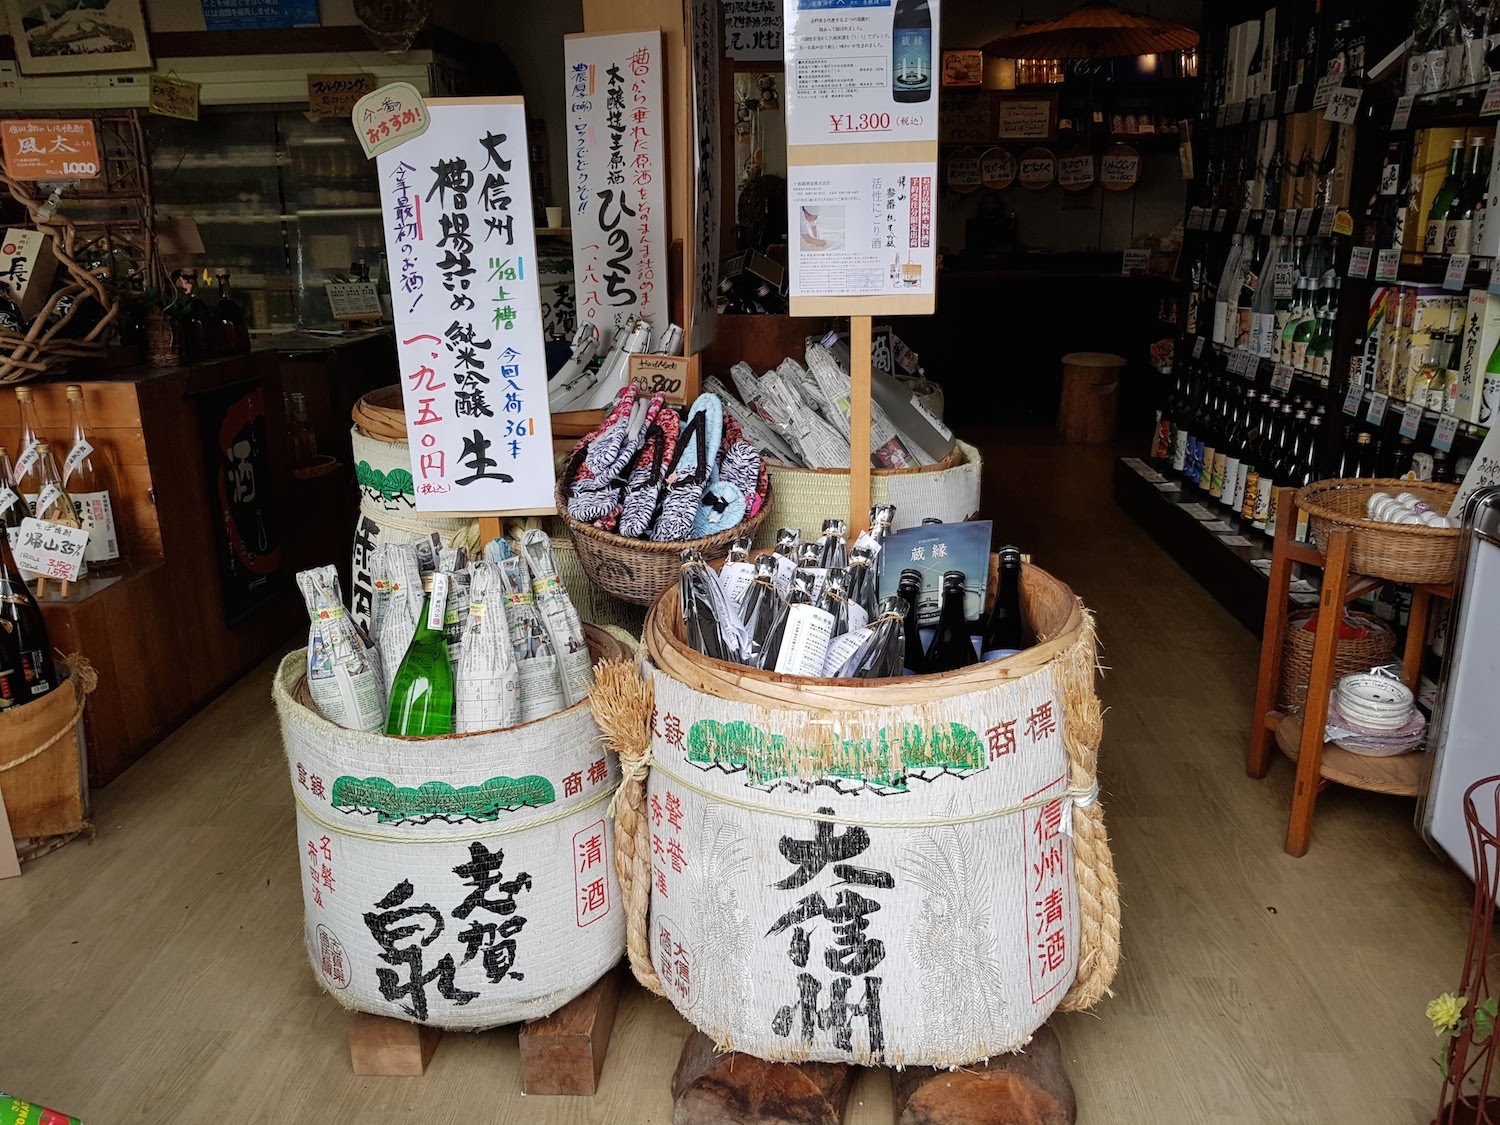 And once you're done with the bath, you might need some sake for the rest of your tired ski-worn muscles!